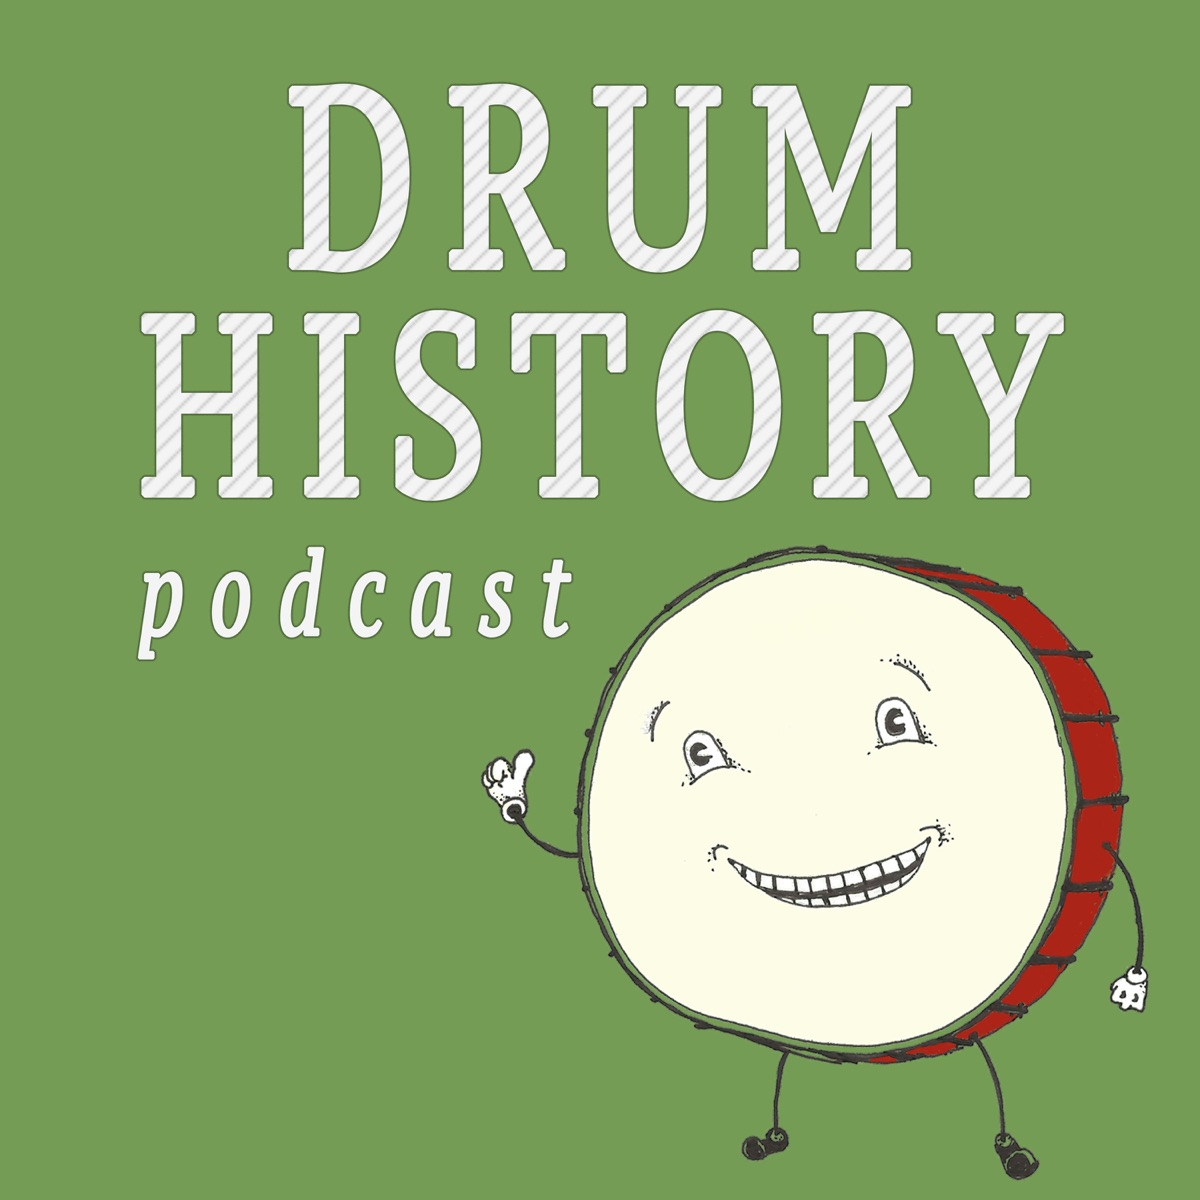 Debunking Cymbal Myths with NickyMoon